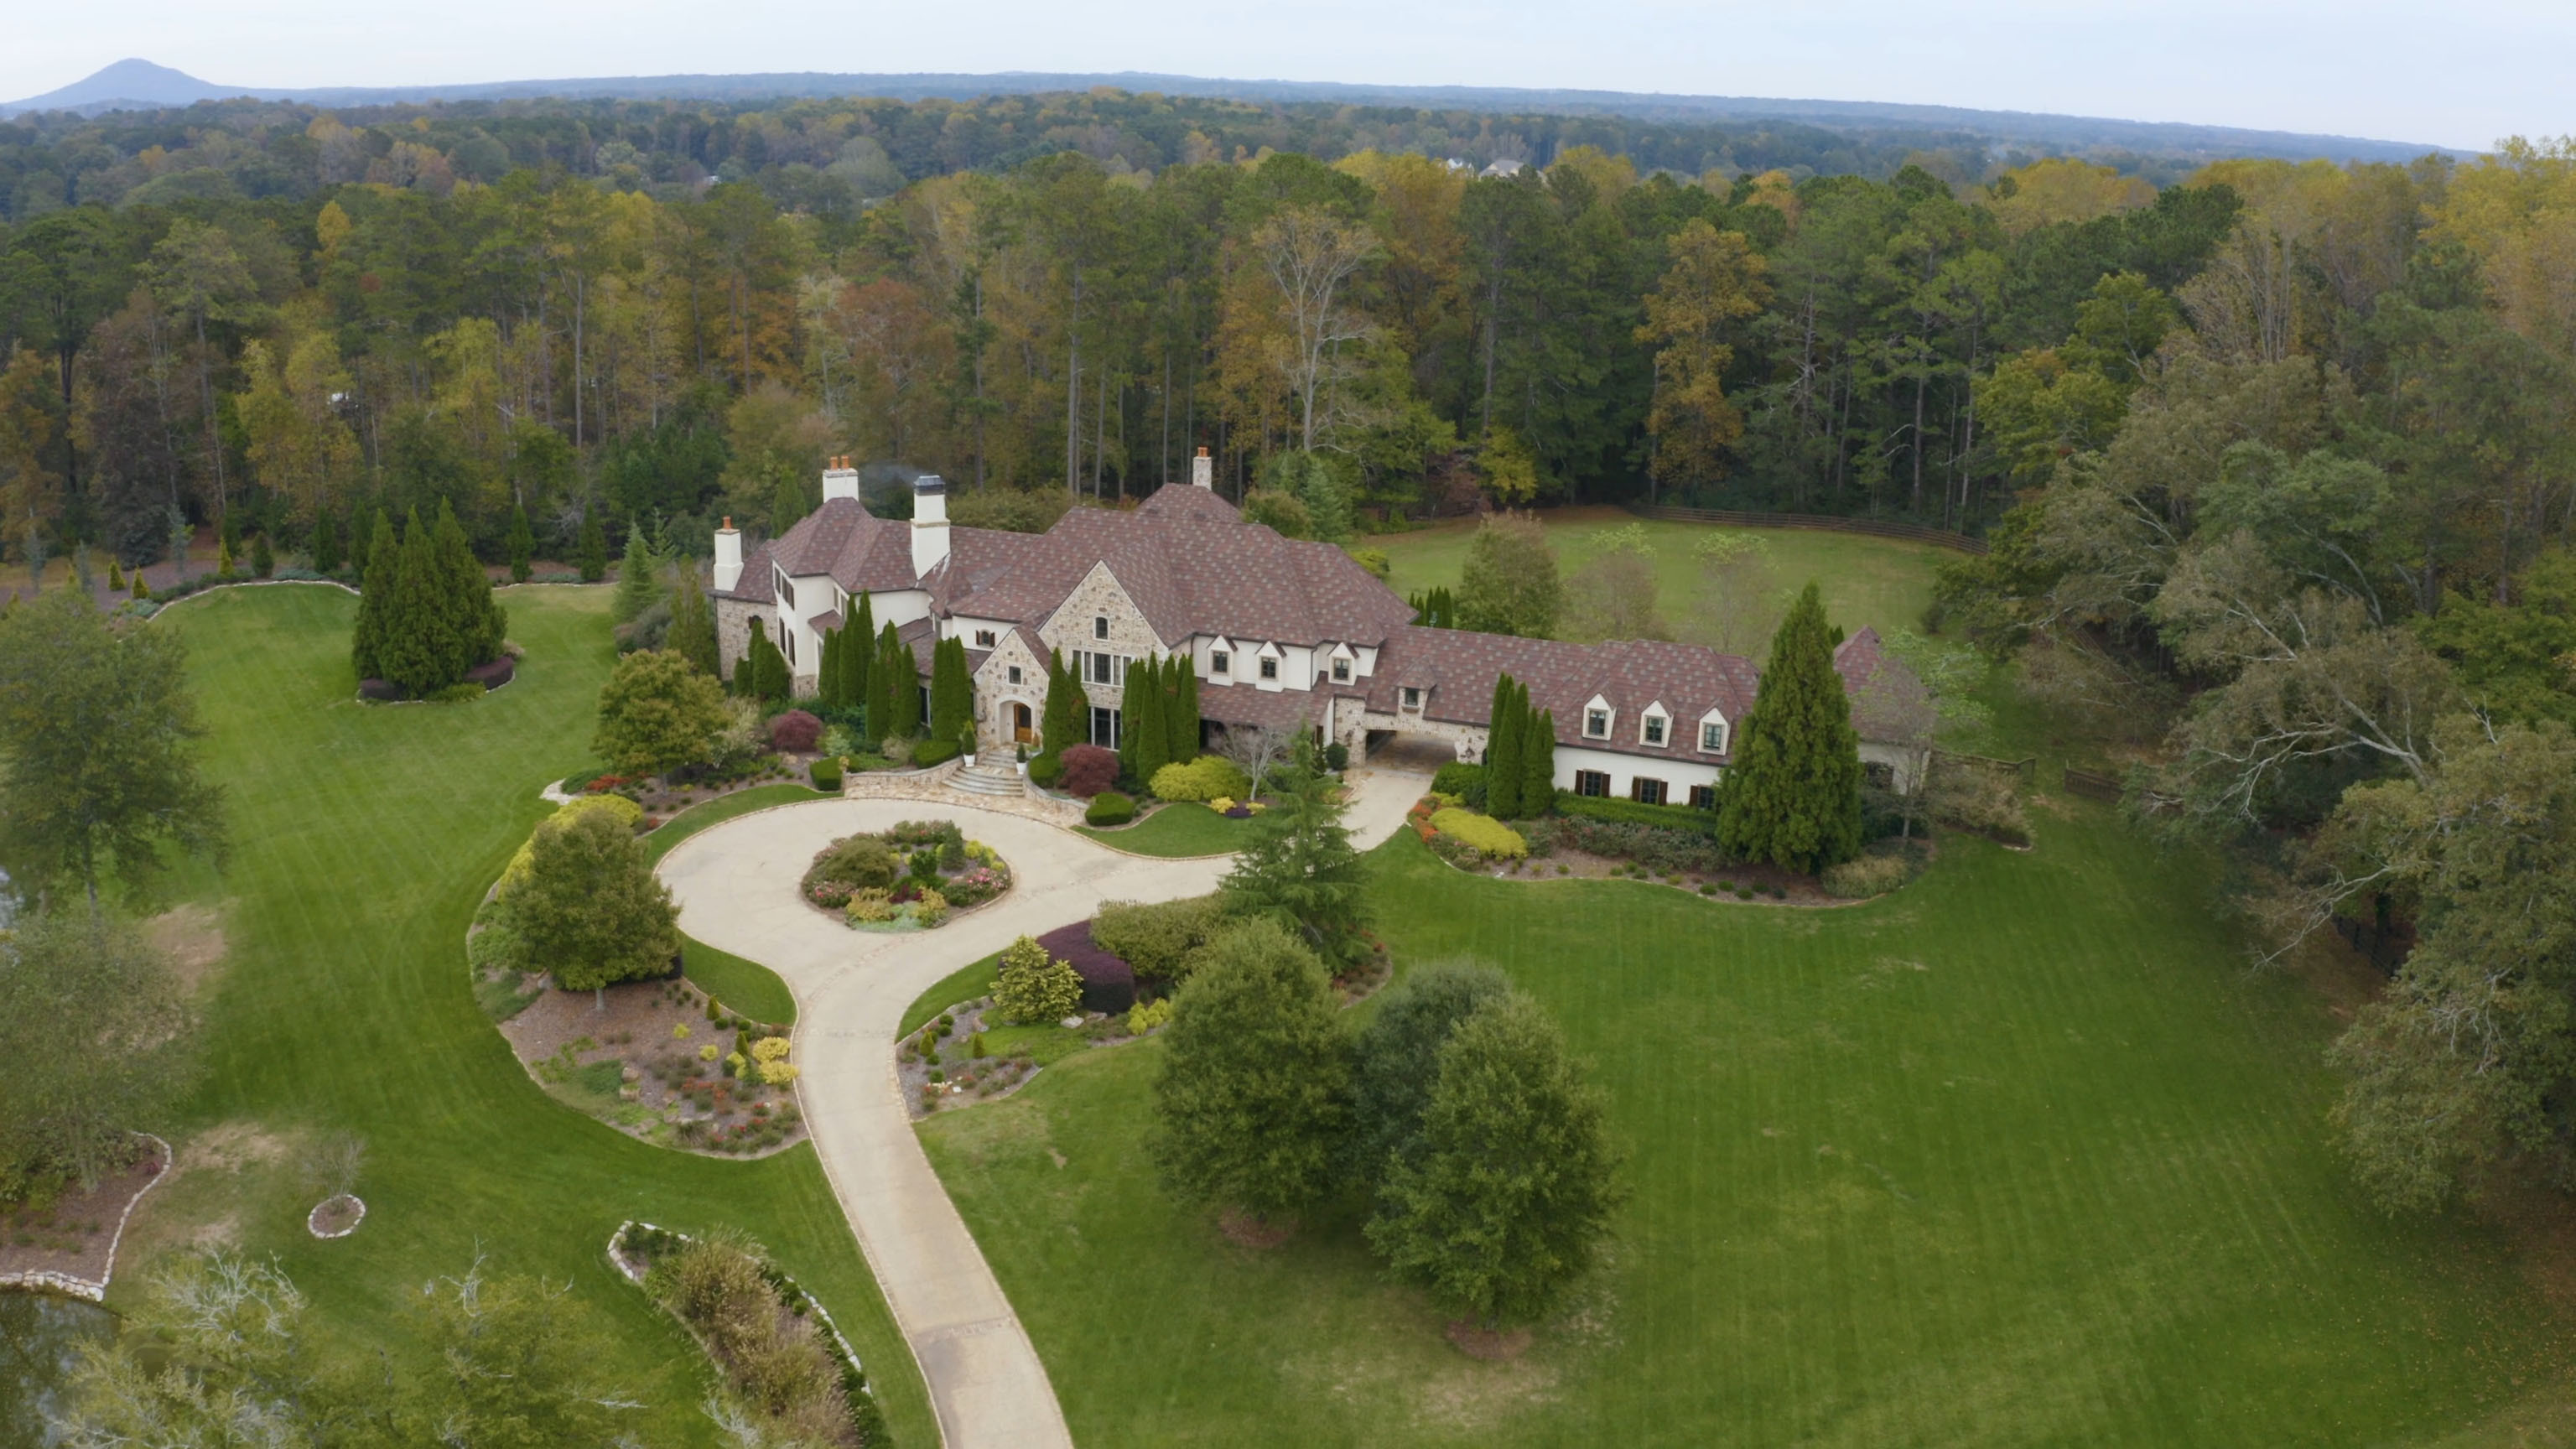 Dwayne 'The Rock' Johnson recently spent around £7m on a new home in Georgia